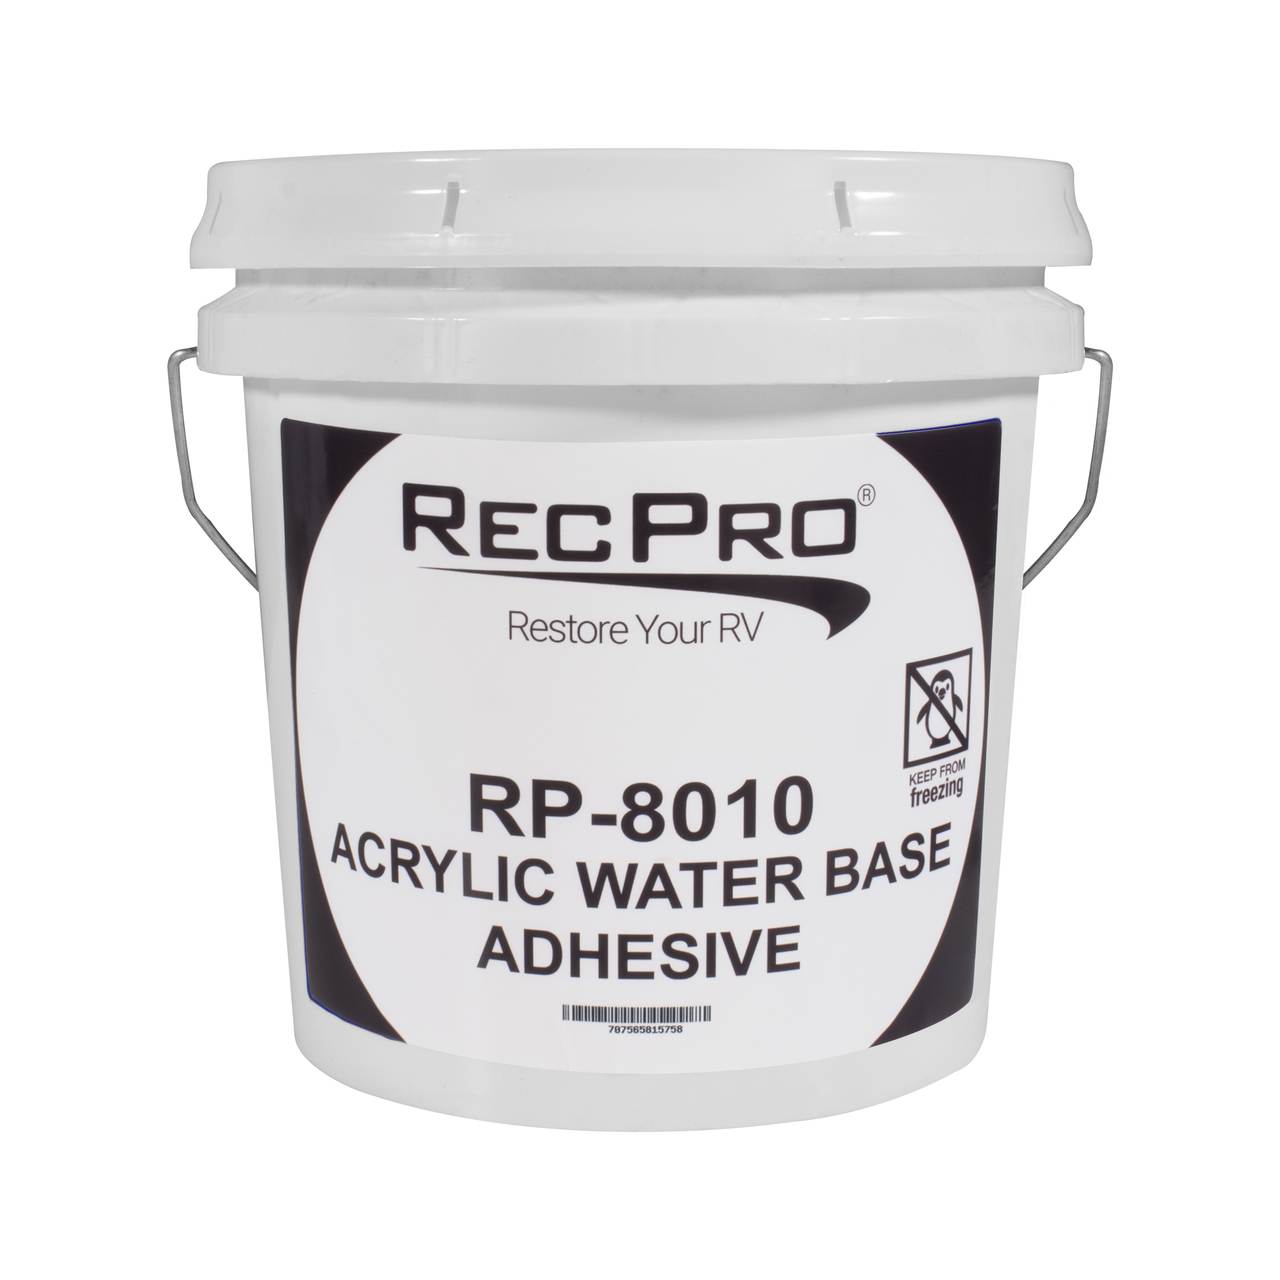 Sealant Amp Adhesive 8010 Water Based Rv Rubber Roof Adhesive